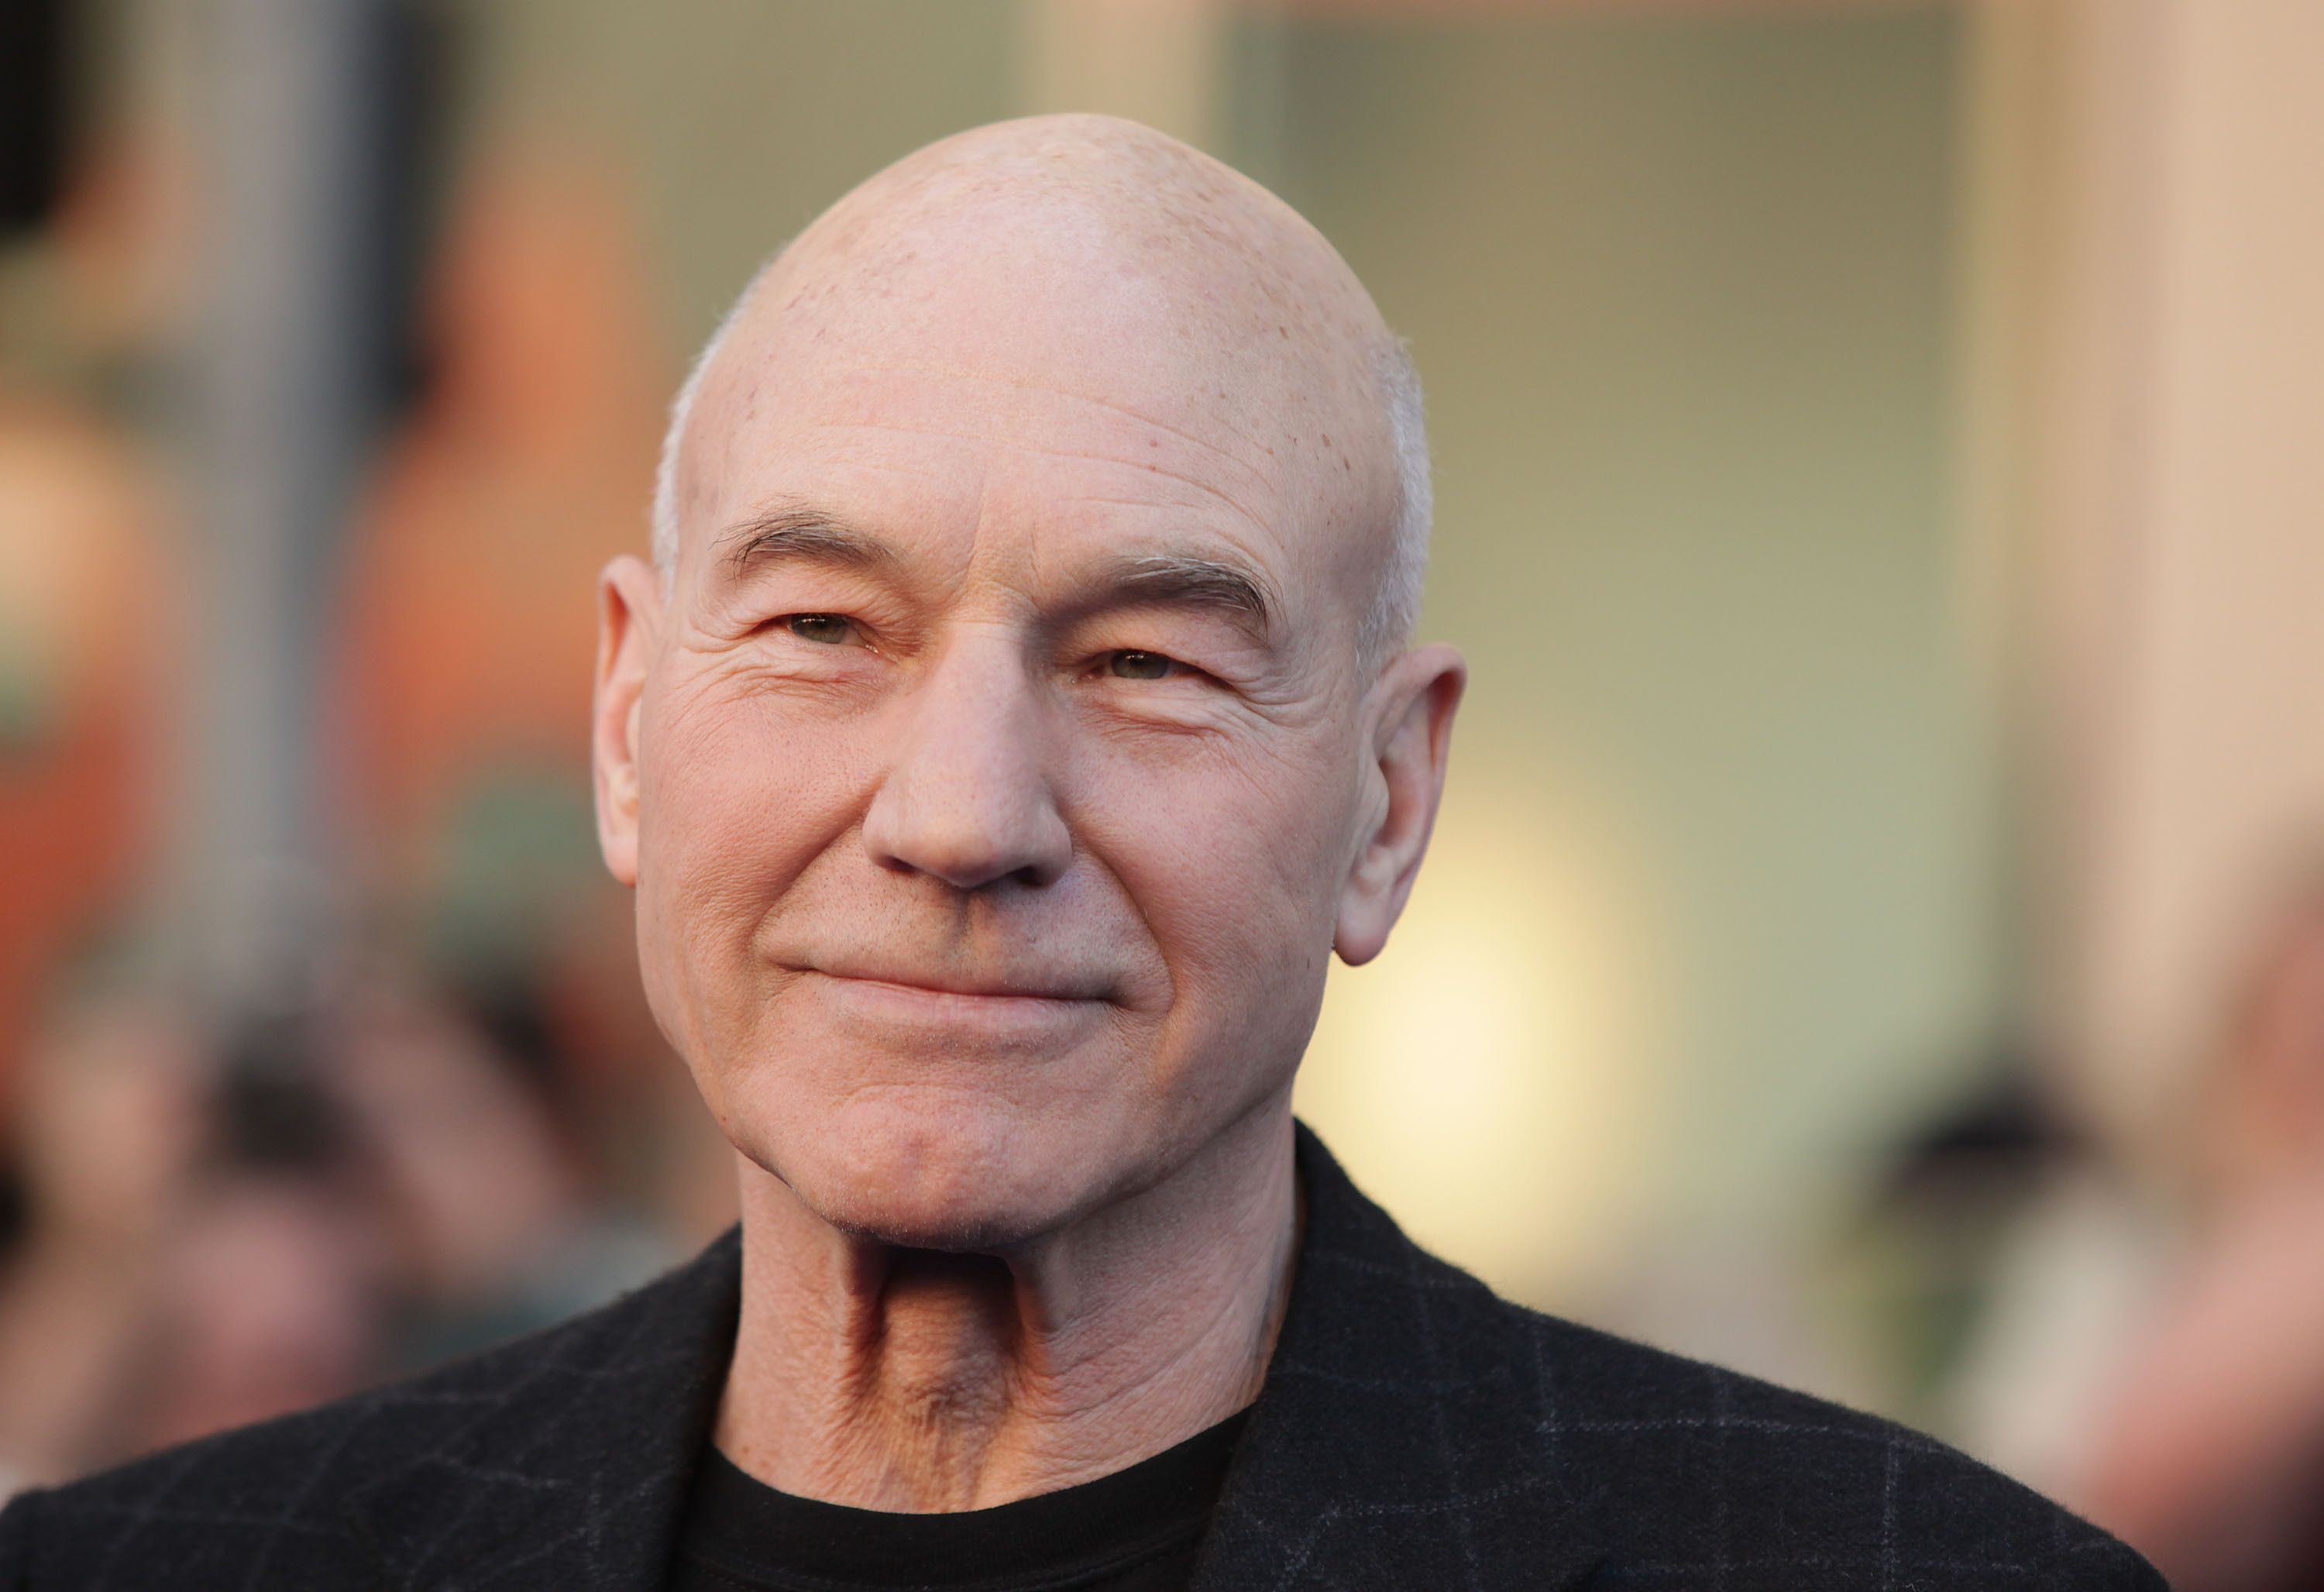 Patrick Stewart on the red carpet